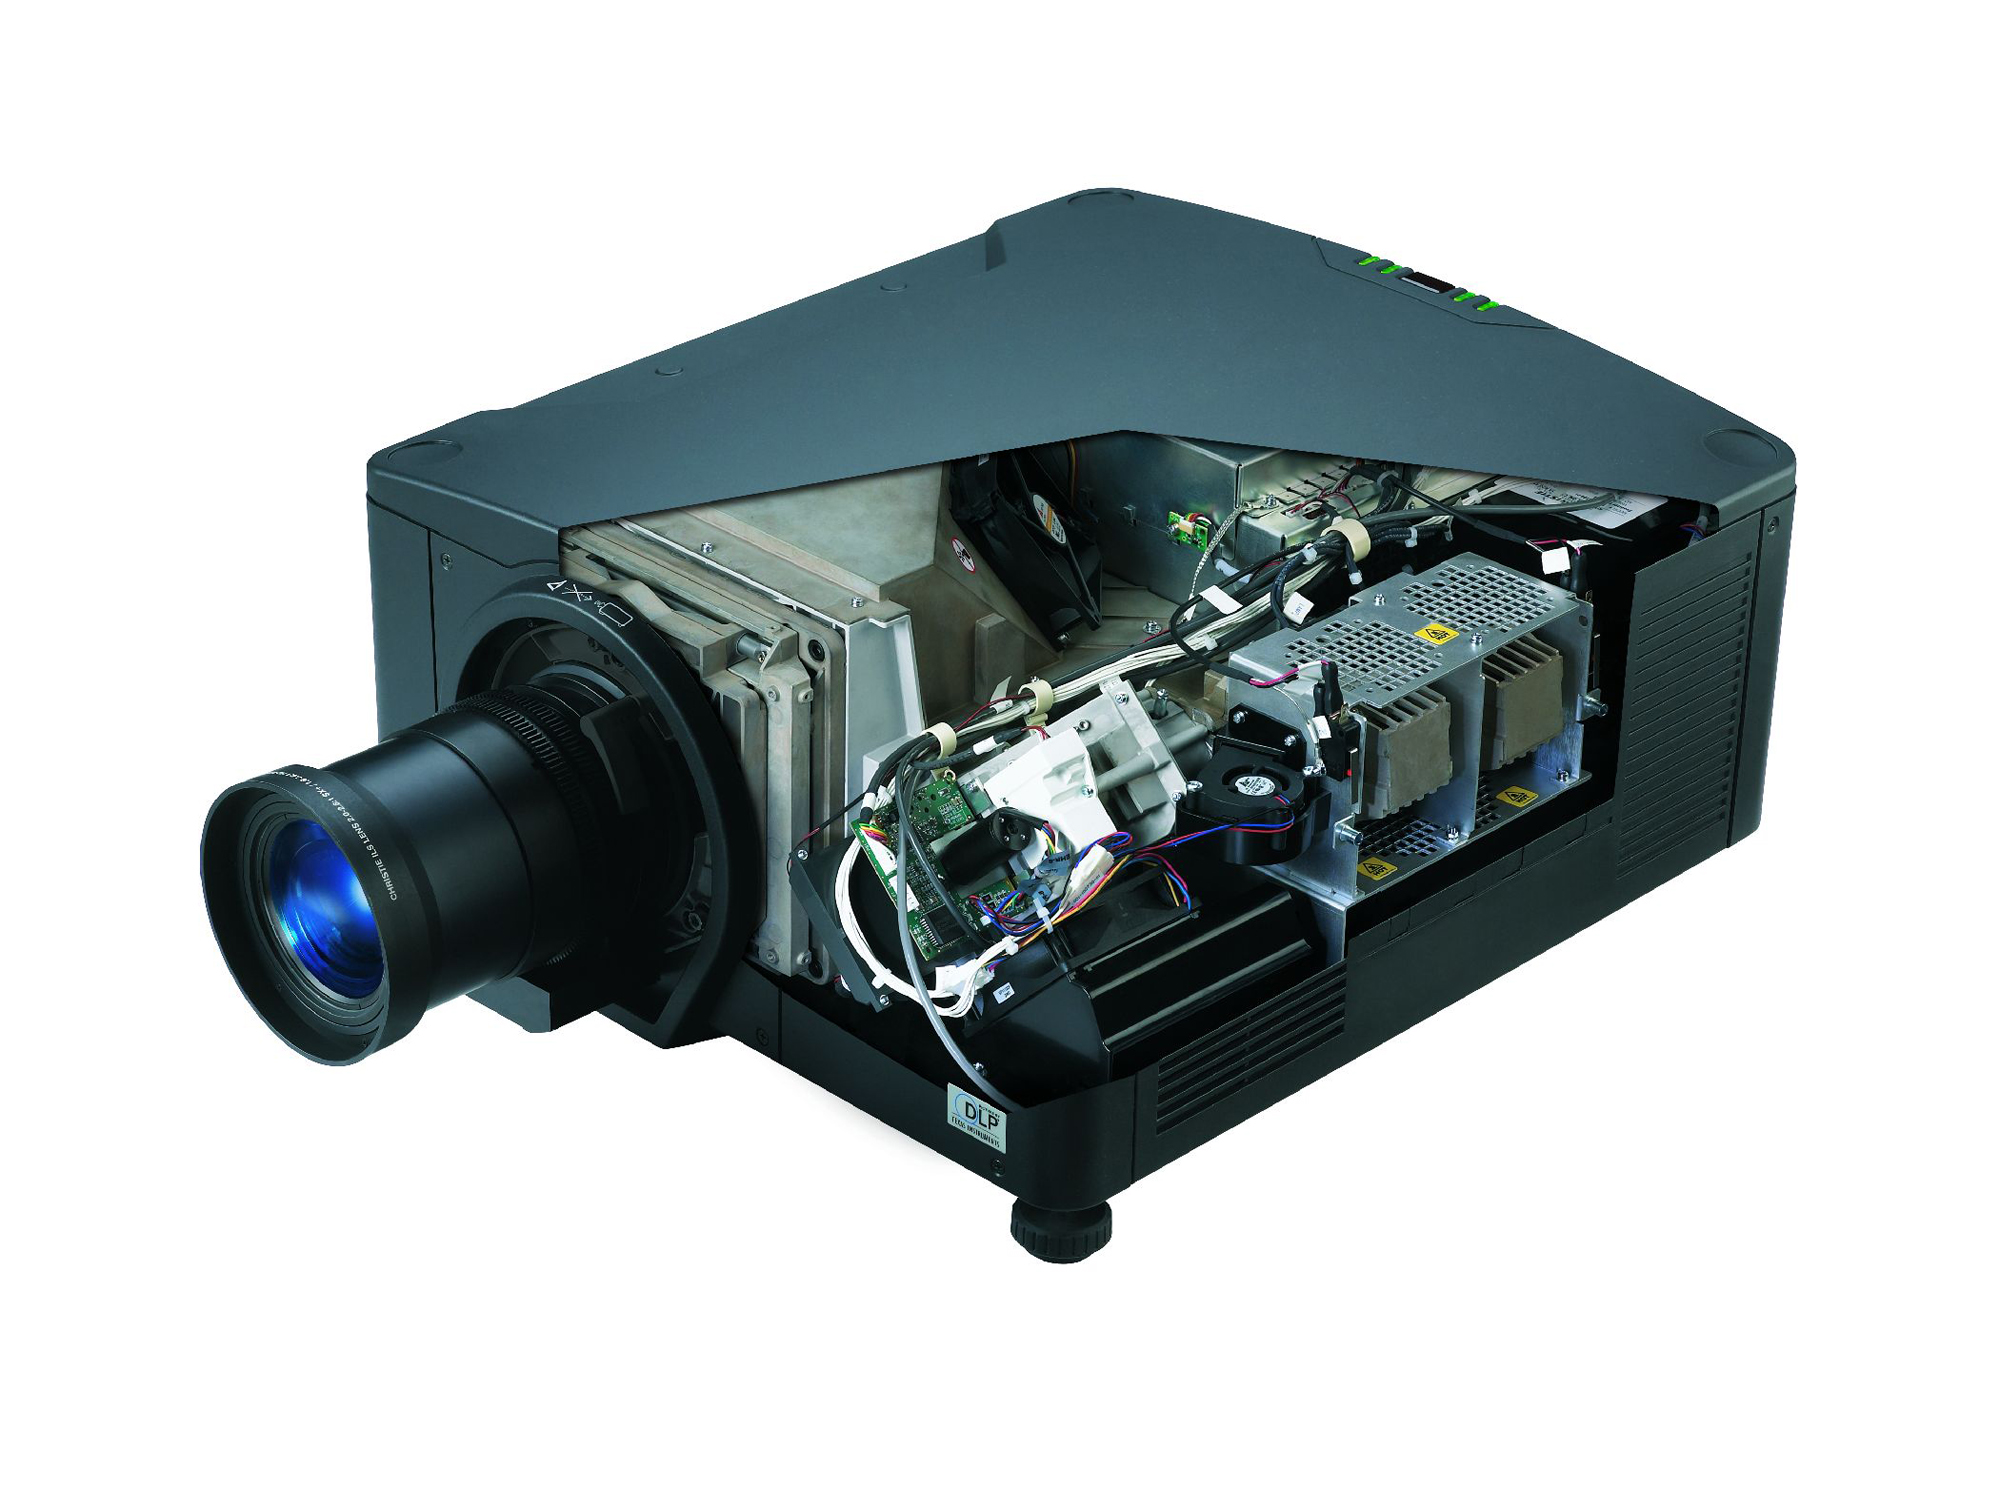 /globalassets/.catalog/products/images/mirage-ds6k-m/gallery/mirage-ds6k-m-digital-projector-inside.jpg